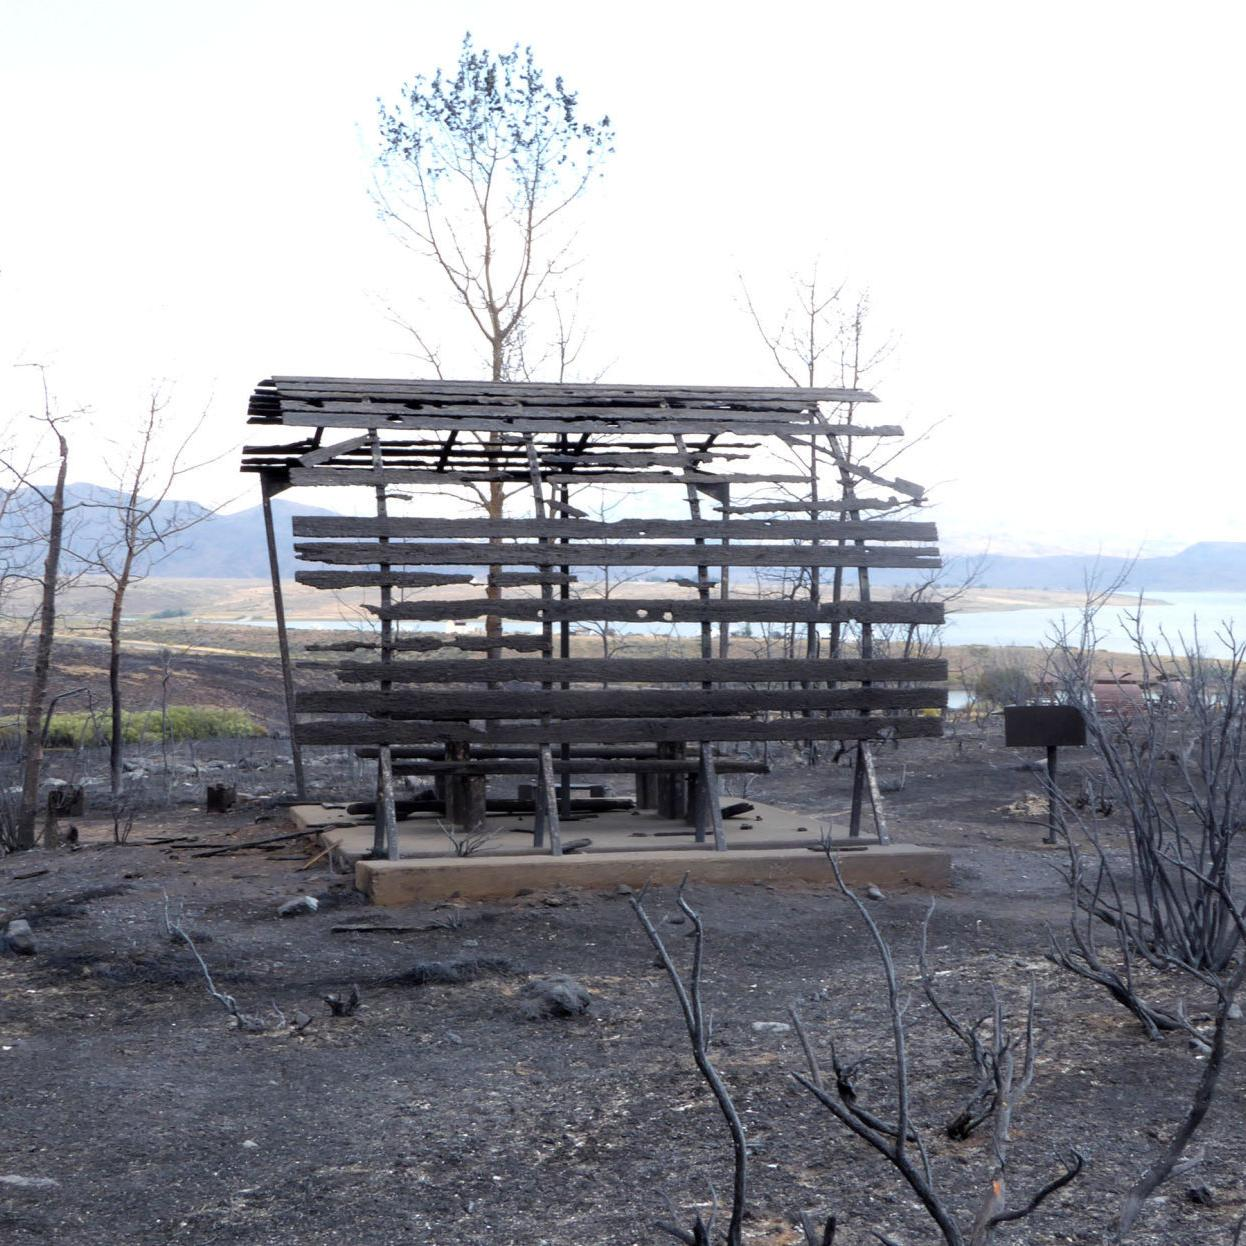 Wildhorse Campground closed due to fire damage | News